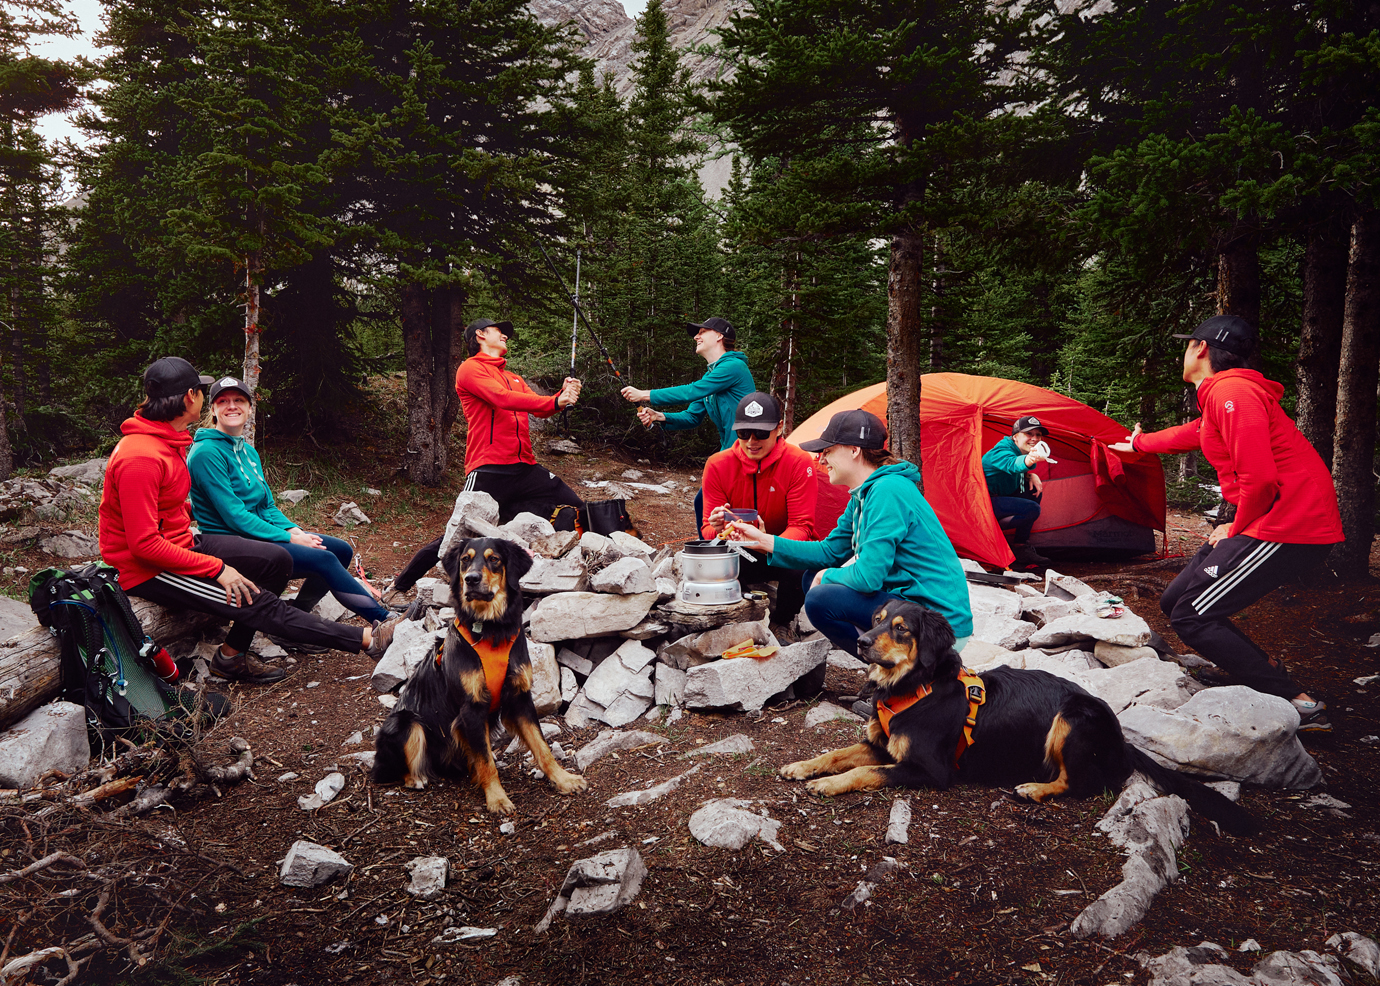 Two backcountry campers and their clones setting up camp with marmot limelight 3P and black dog in orange harness